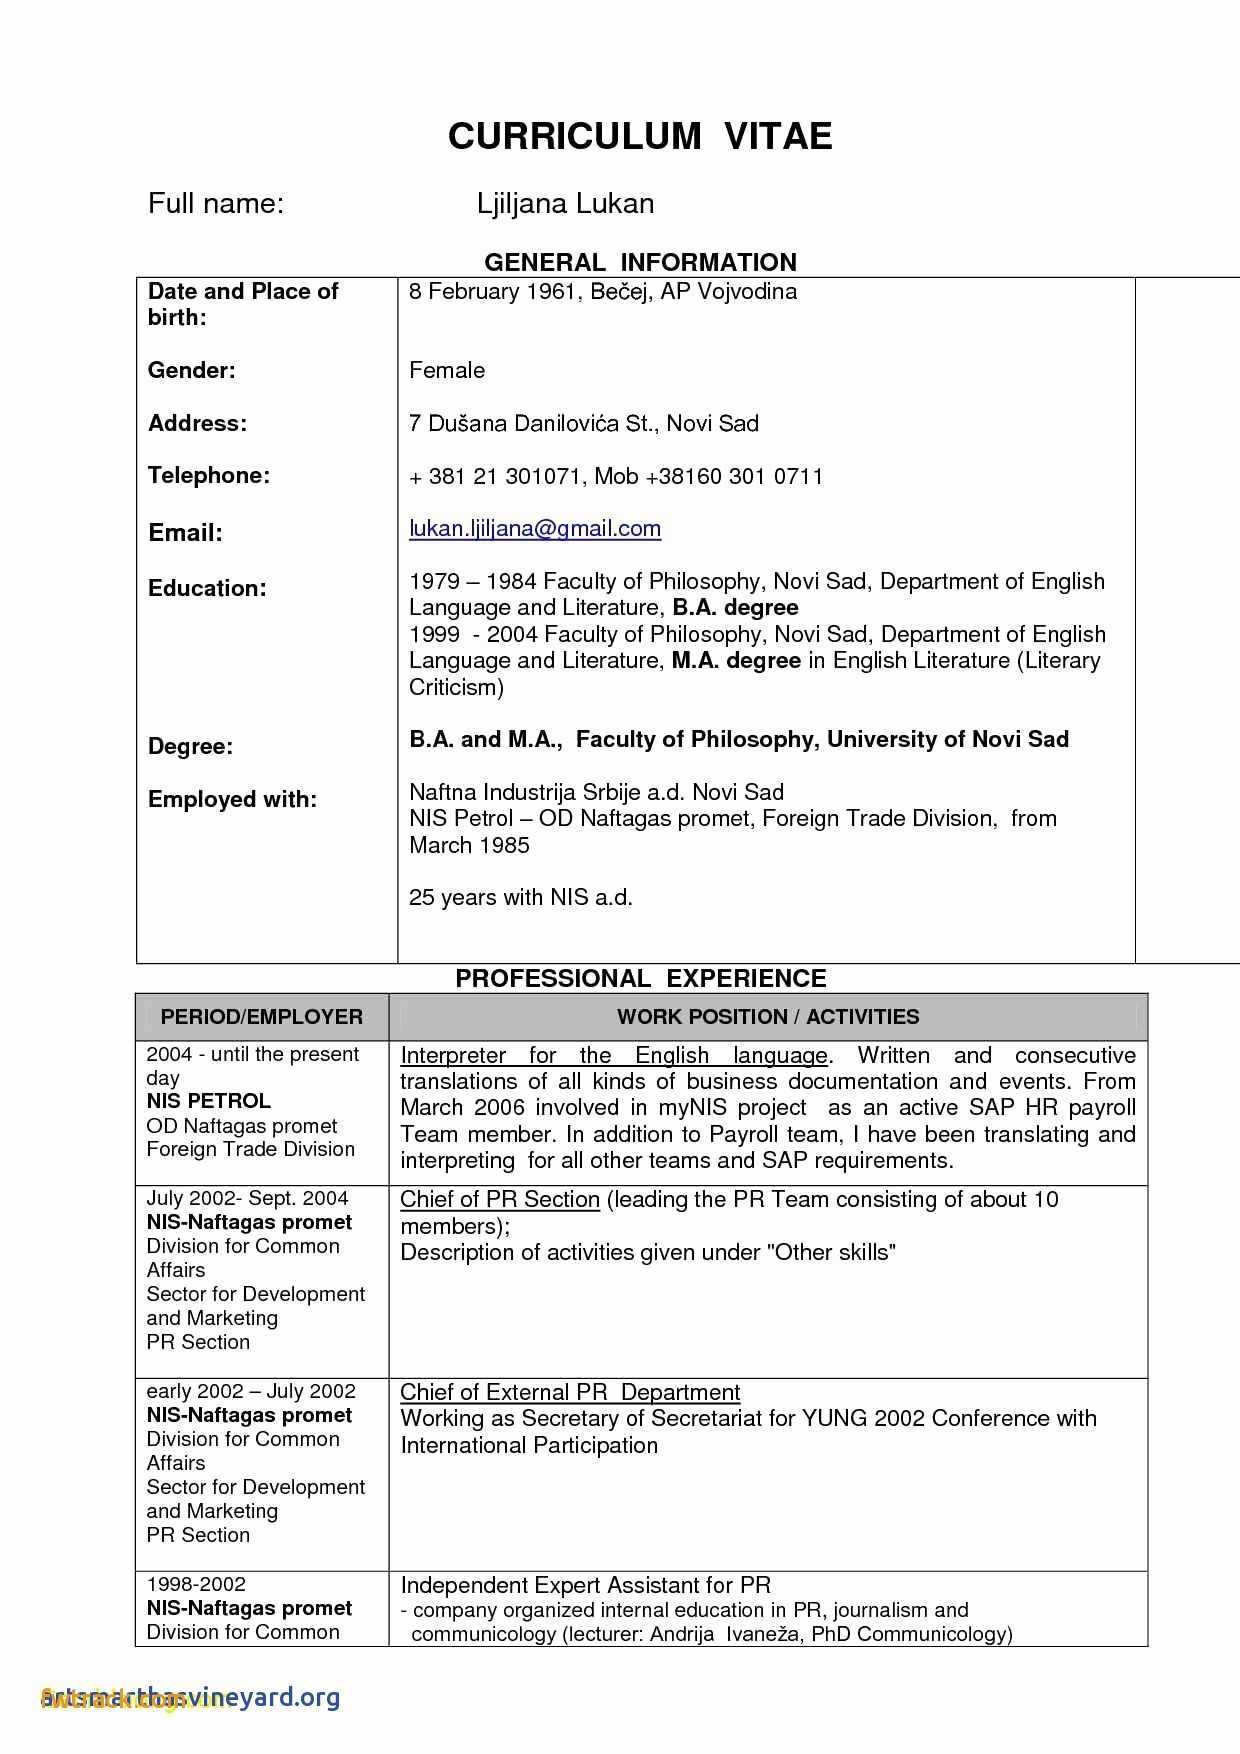 promotional model resume template example-Promotional Model Resume Template 15-j